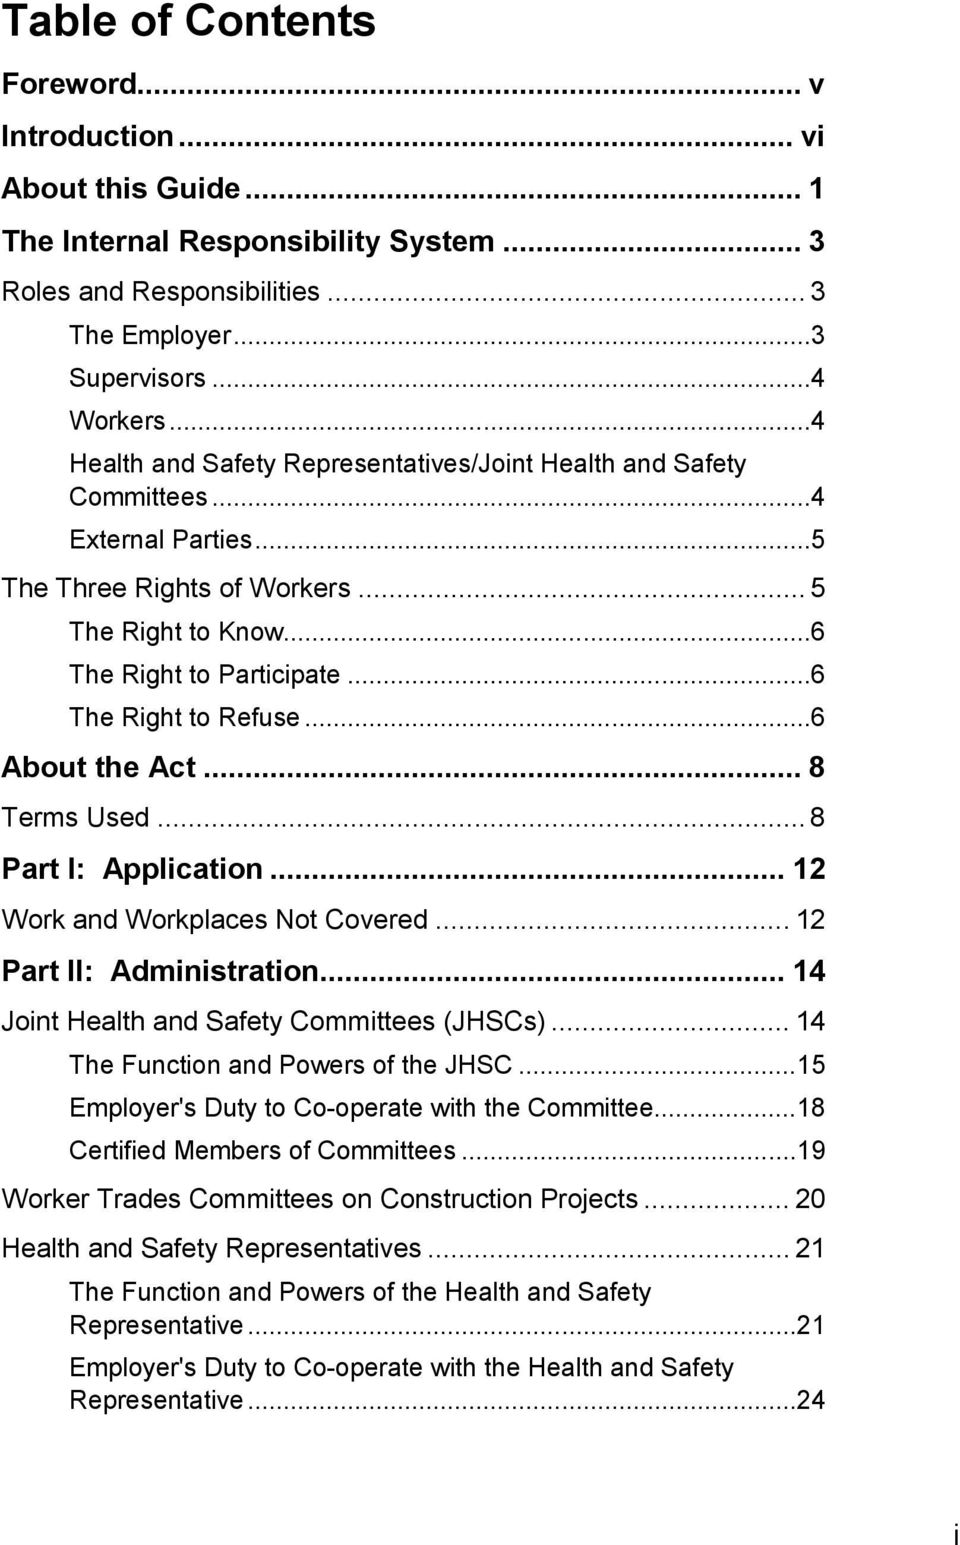 .. 6 The Right to Refuse... 6 About the Act... 8 Terms Used... 8 Part I: Application... 12 Work and Workplaces Not Covered... 12 Part II: Administration... 14 Joint Health and Safety Committees (JHSCs).